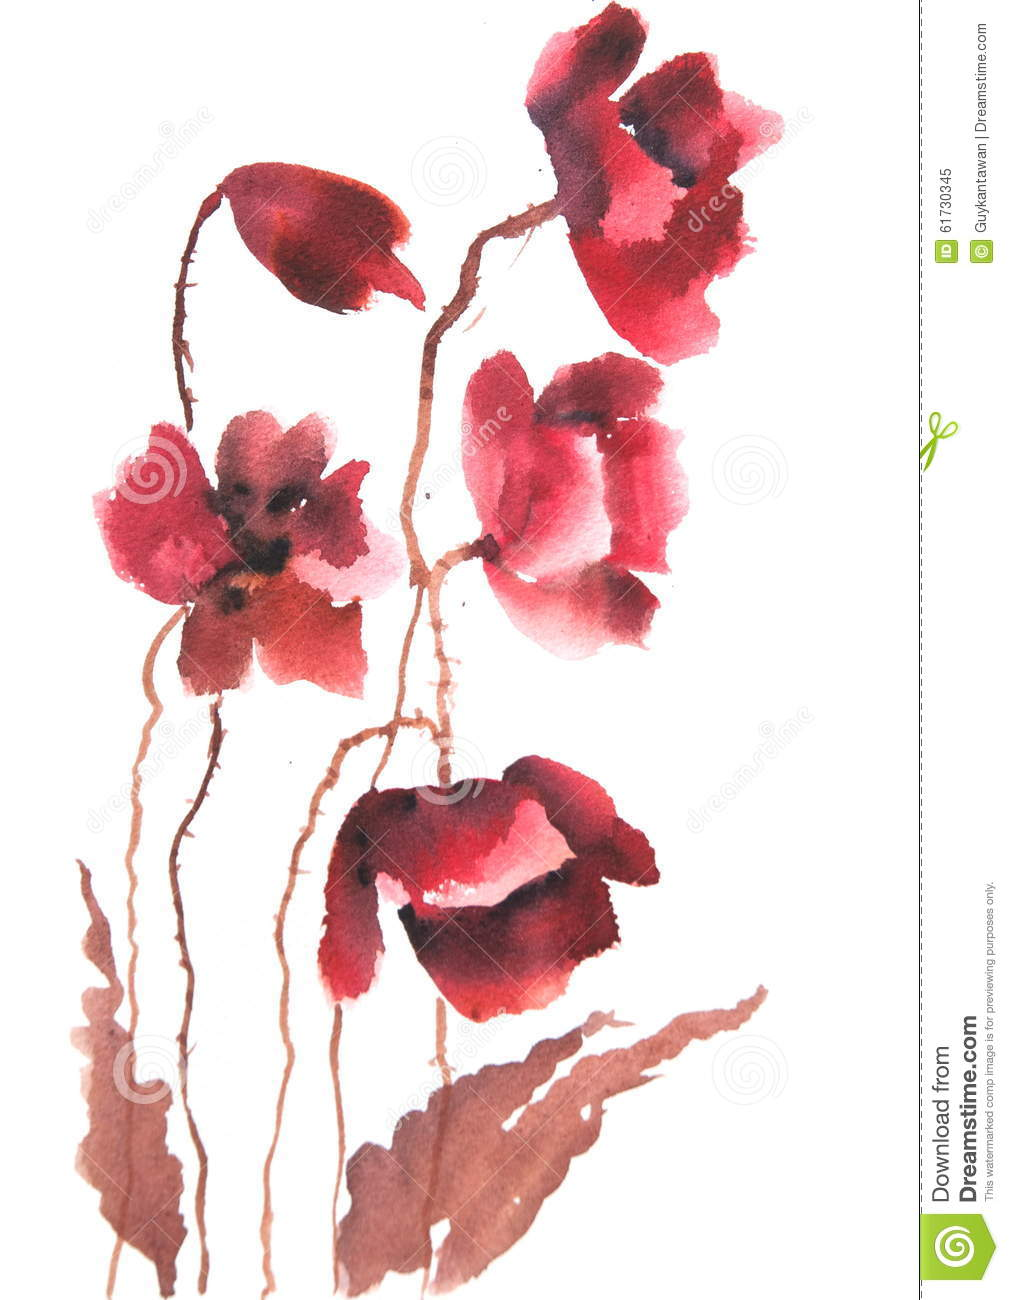 Modern Art Of Red Poppy Flowers Watercolor Painting Stock